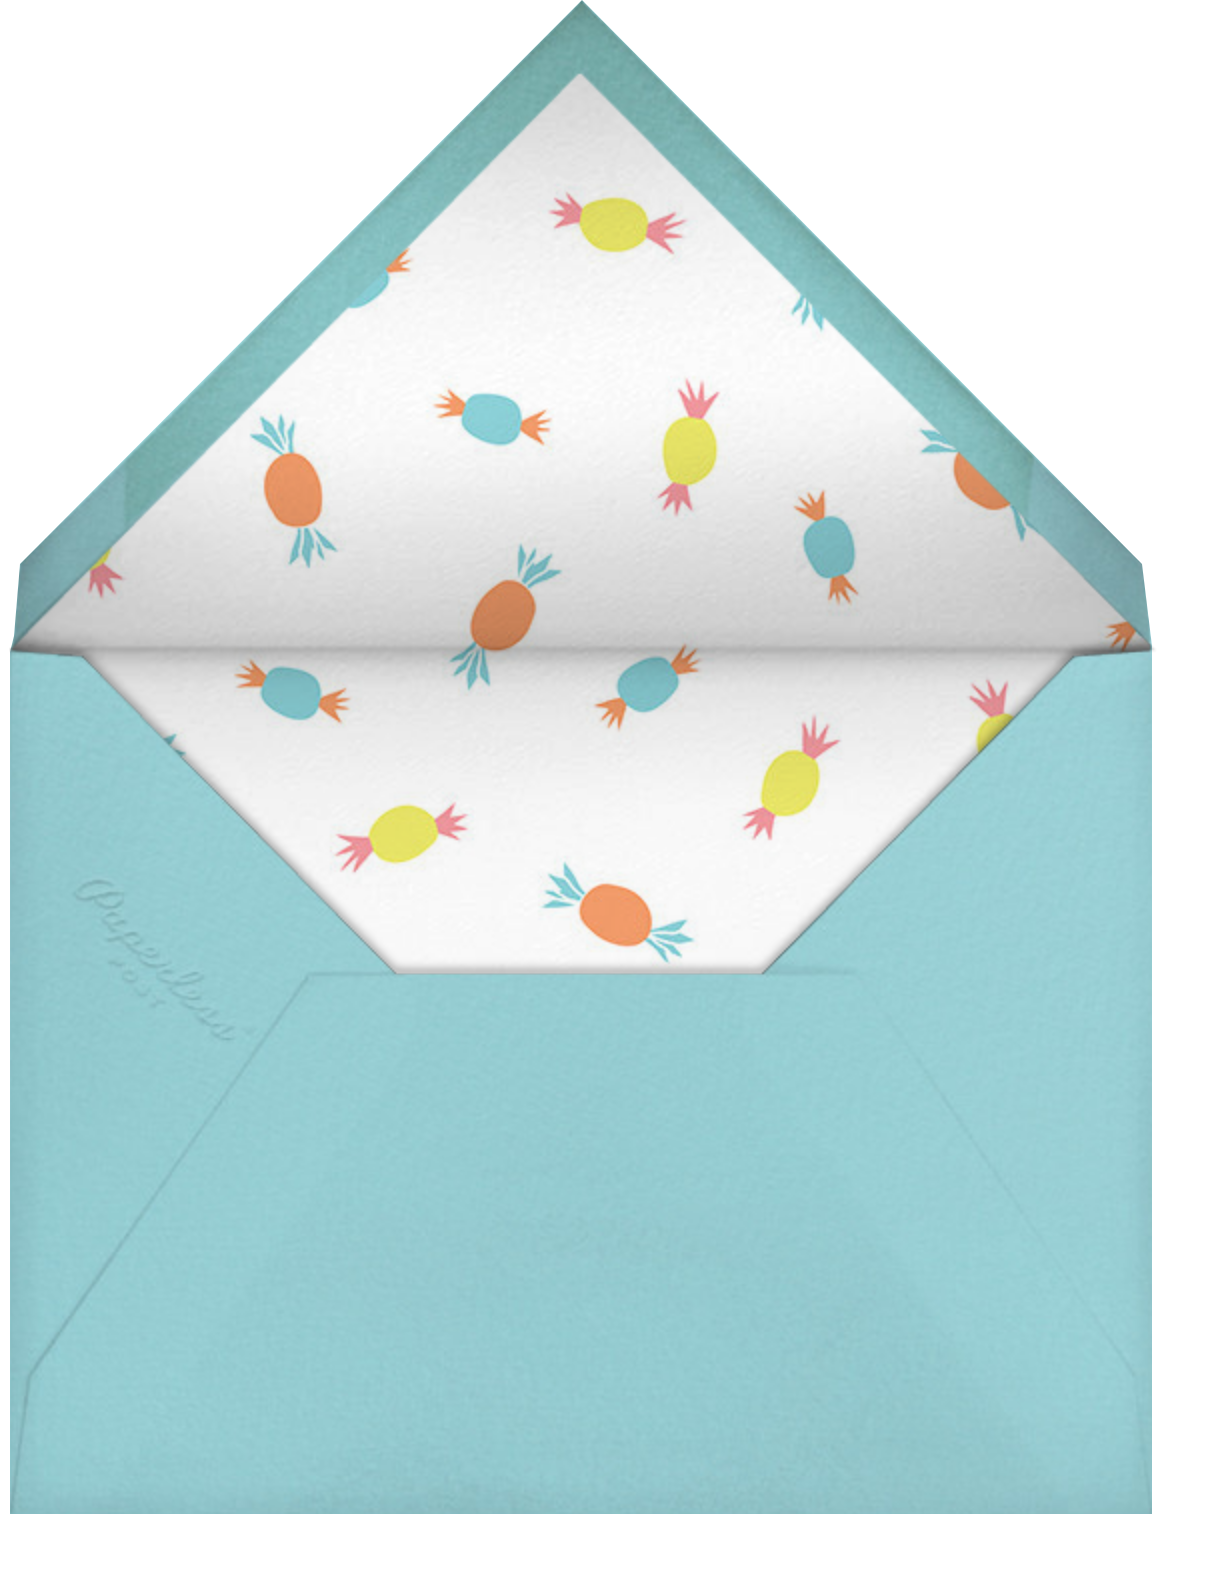 Presents Parade - Little Cube - Woodland baby shower invitations - envelope back